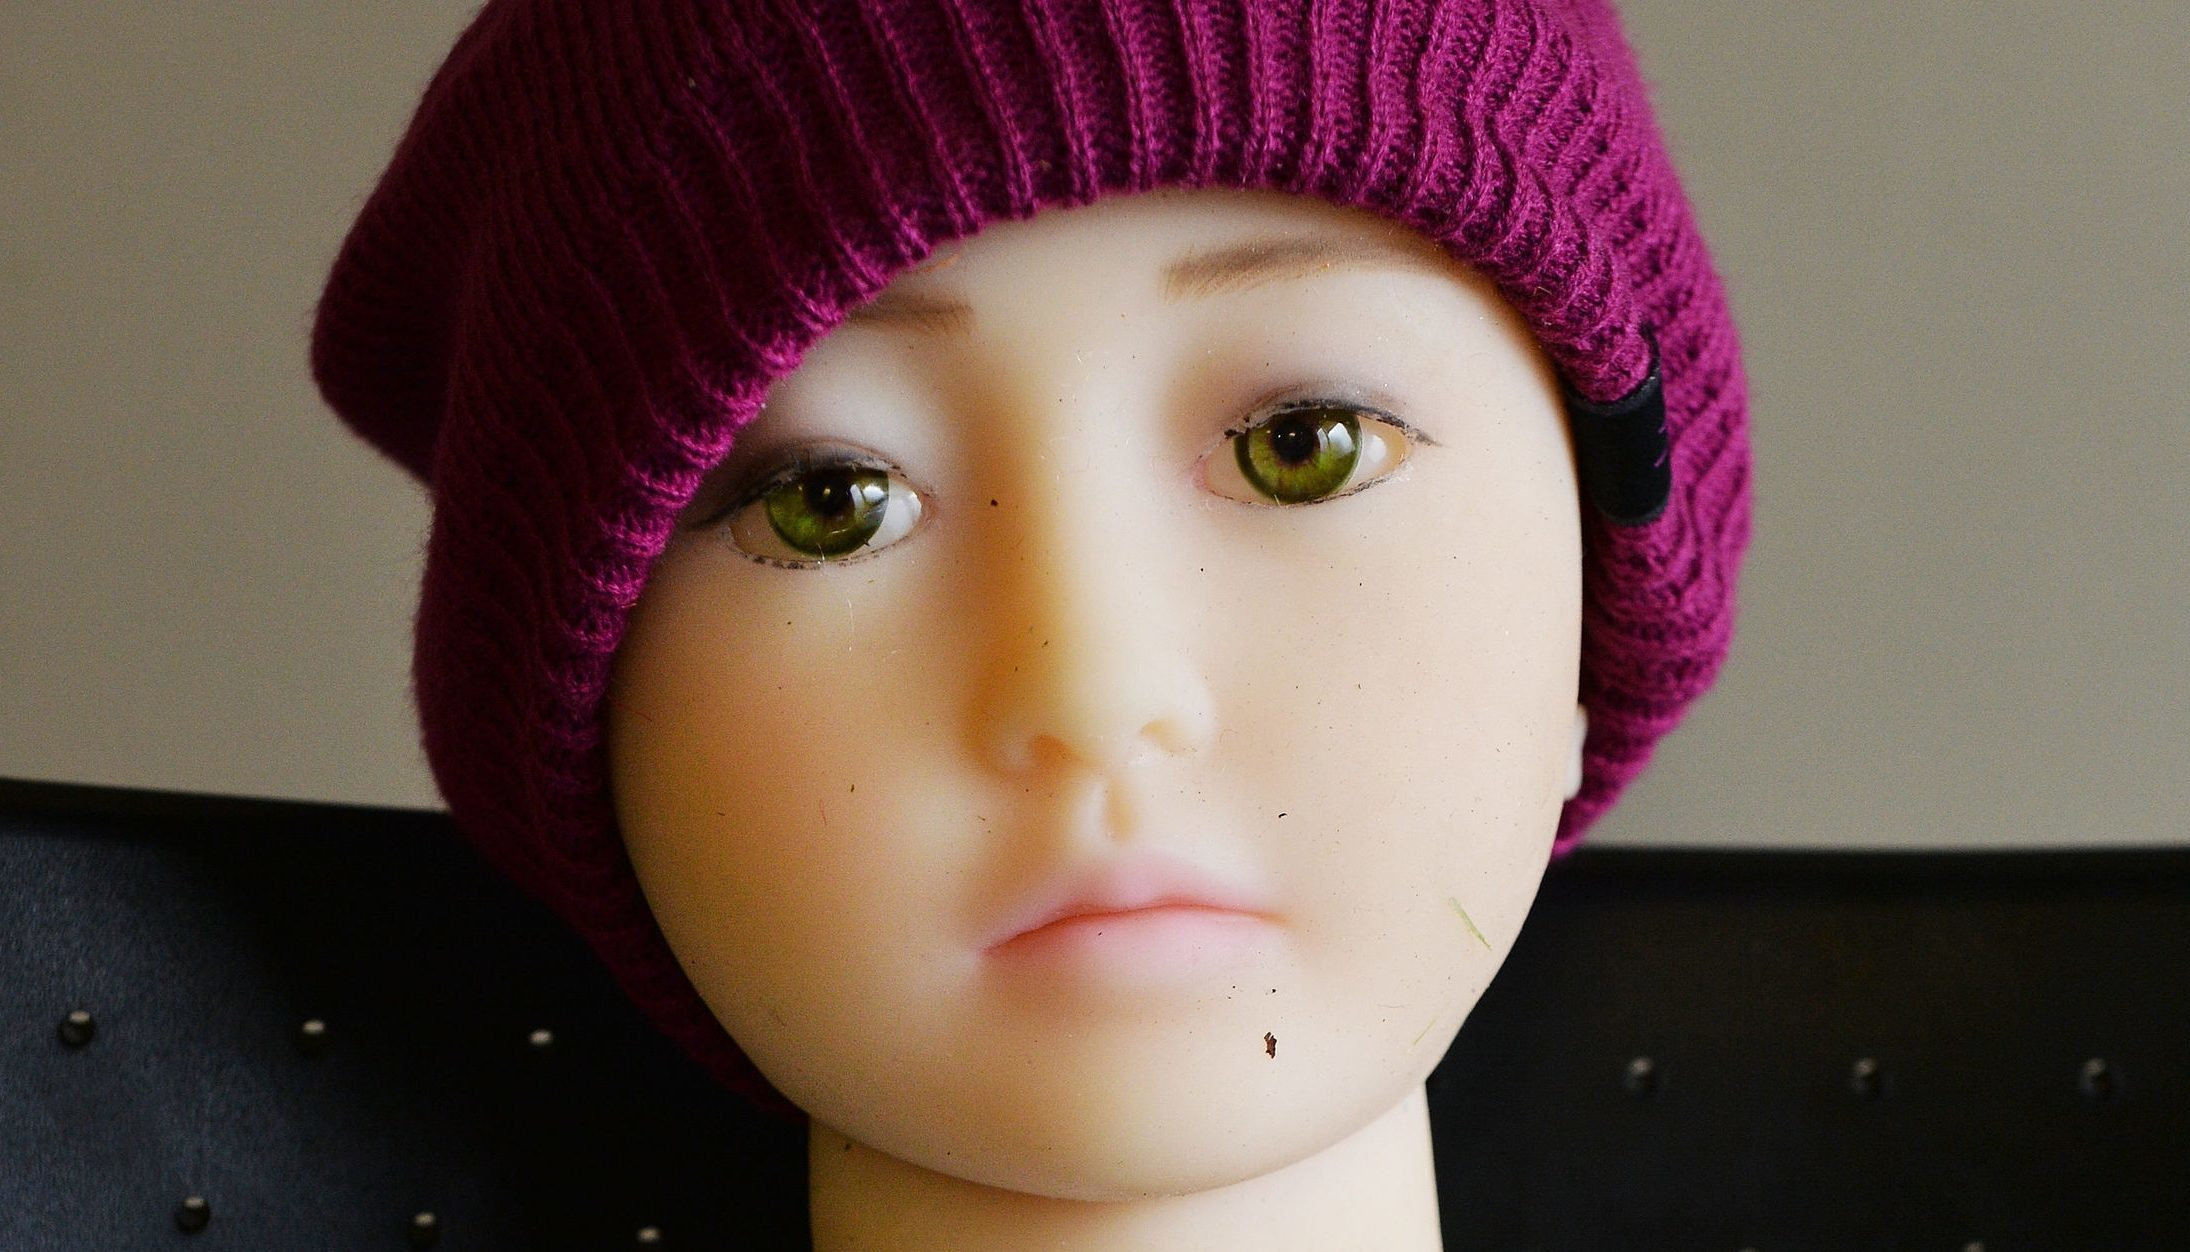 Border Force officers have seized 123 dolls in little more than a year since March 2016